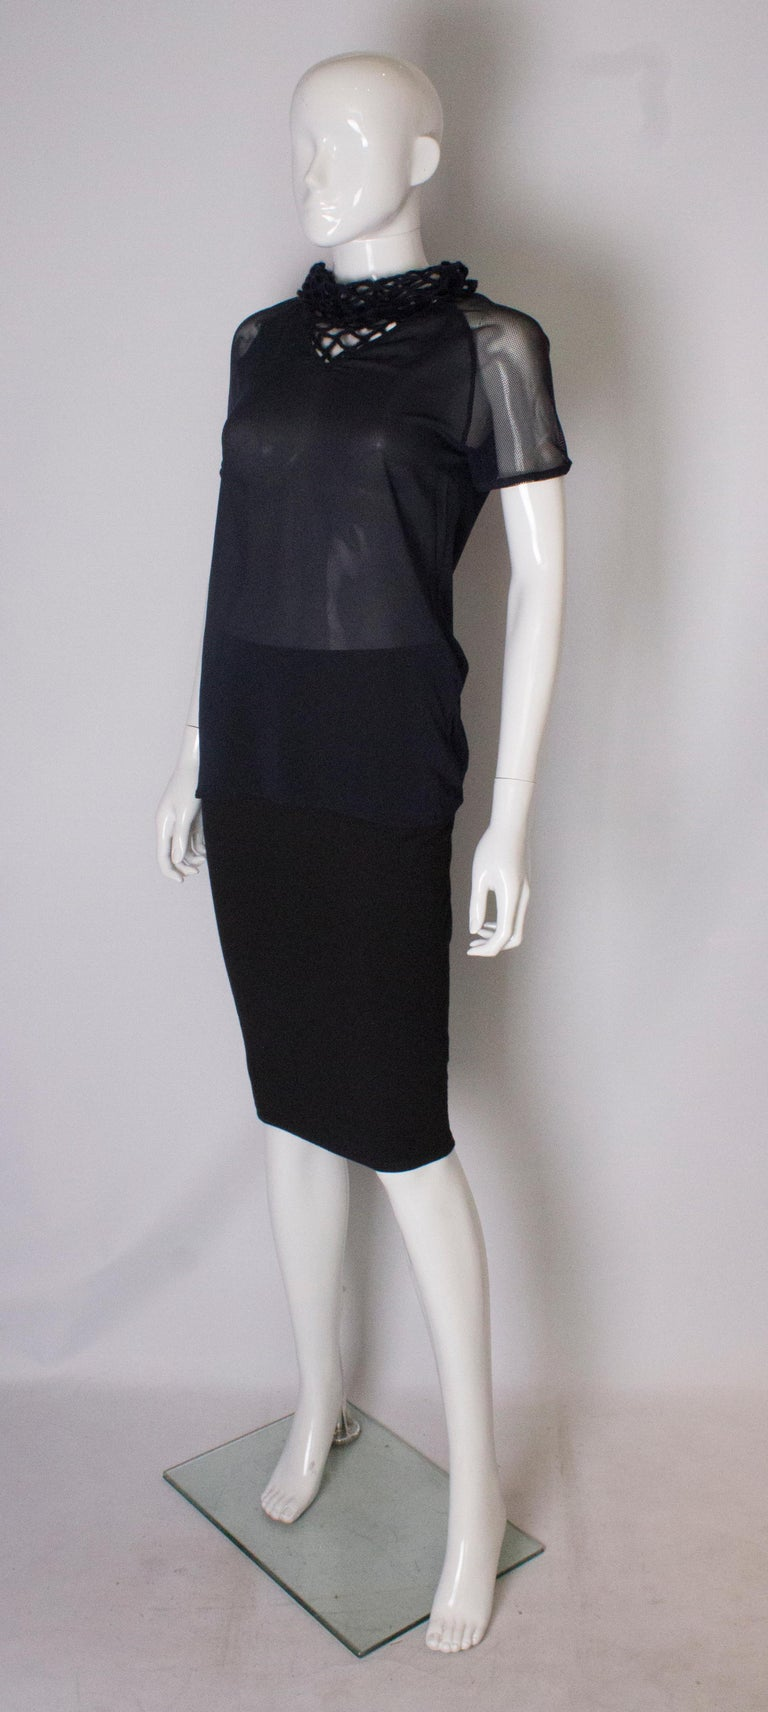 Vintage Obzek Top In Excellent Condition For Sale In London, GB